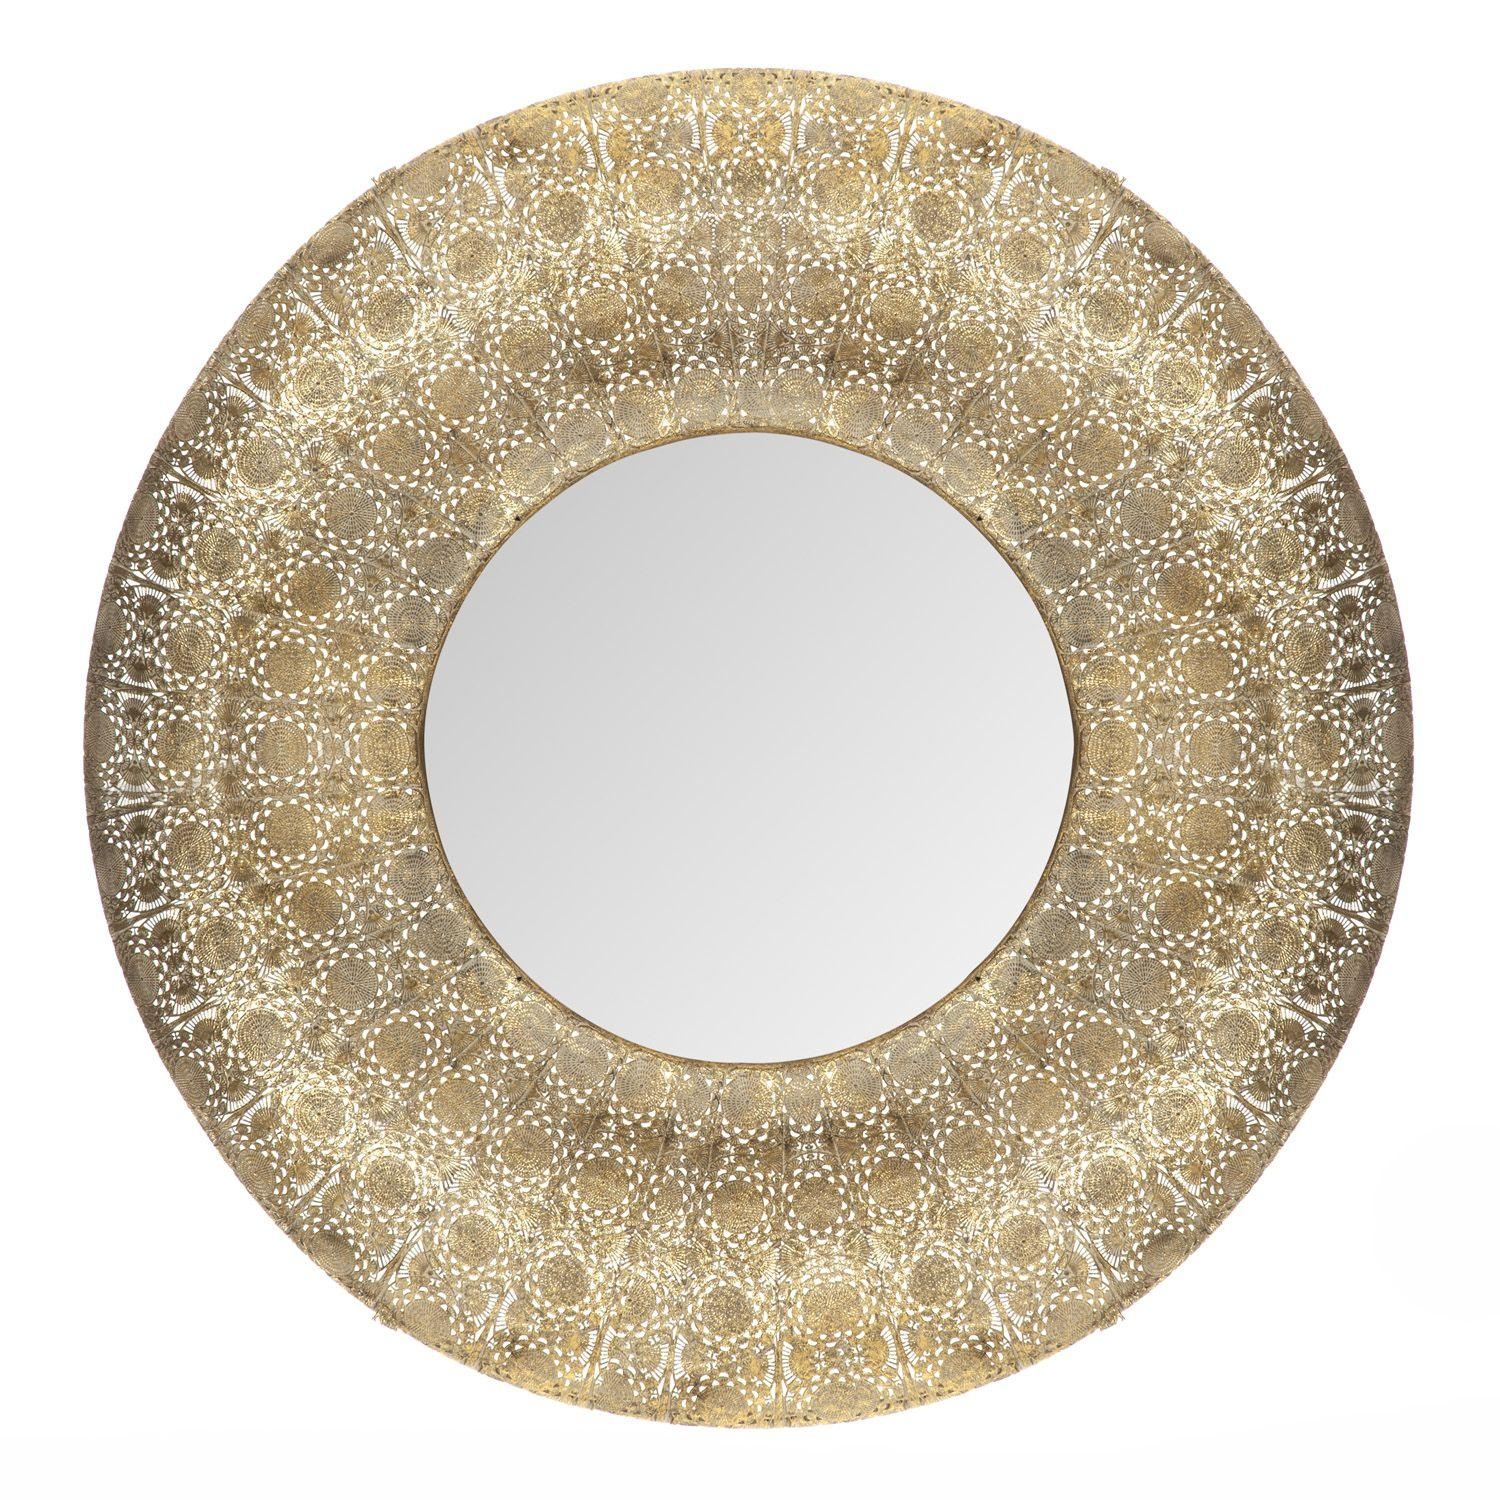 Large Round Gold Moroccan Arabian Arabesque Rare • Samisonline In Gold Round Mirrors (Image 10 of 20)